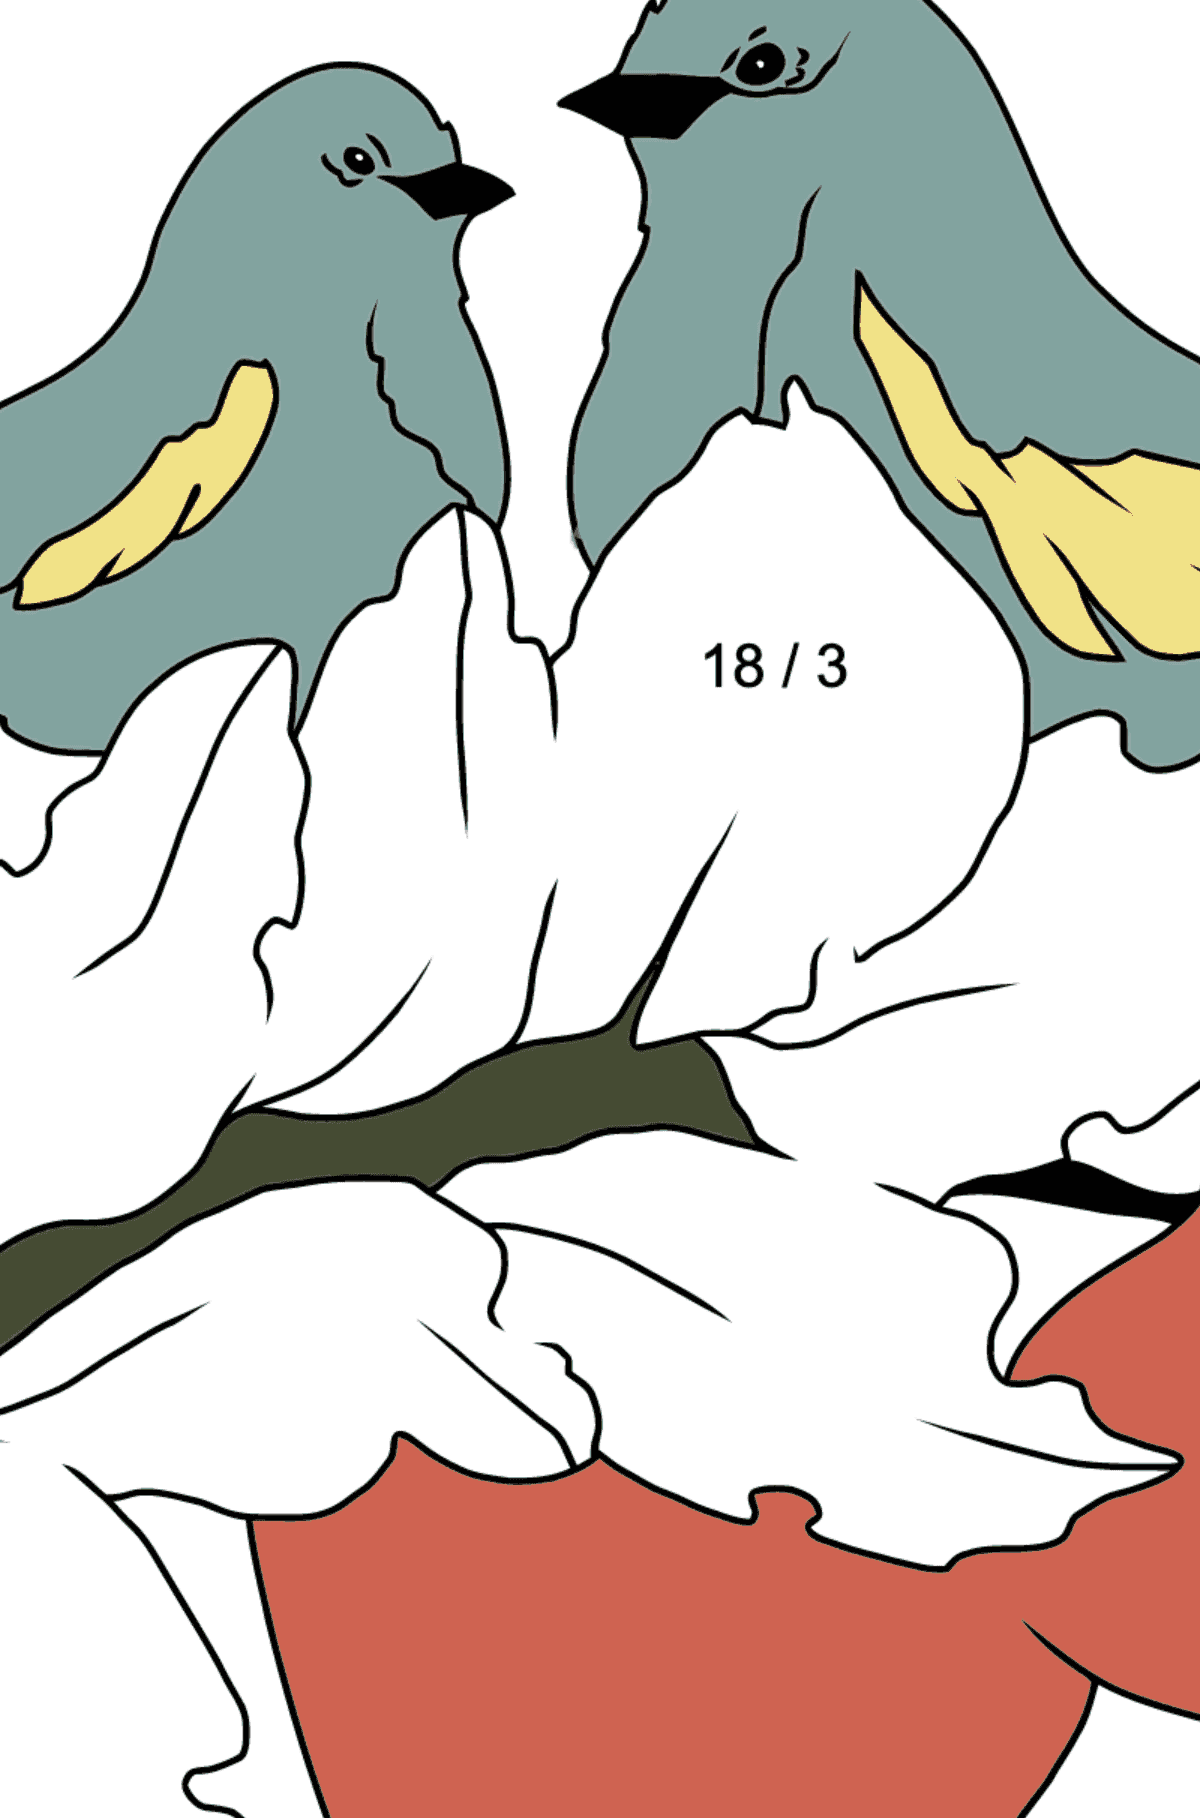 Autumn Coloring Page - Birds on the Branch of an Apple Tree - Math Coloring - Division for Children